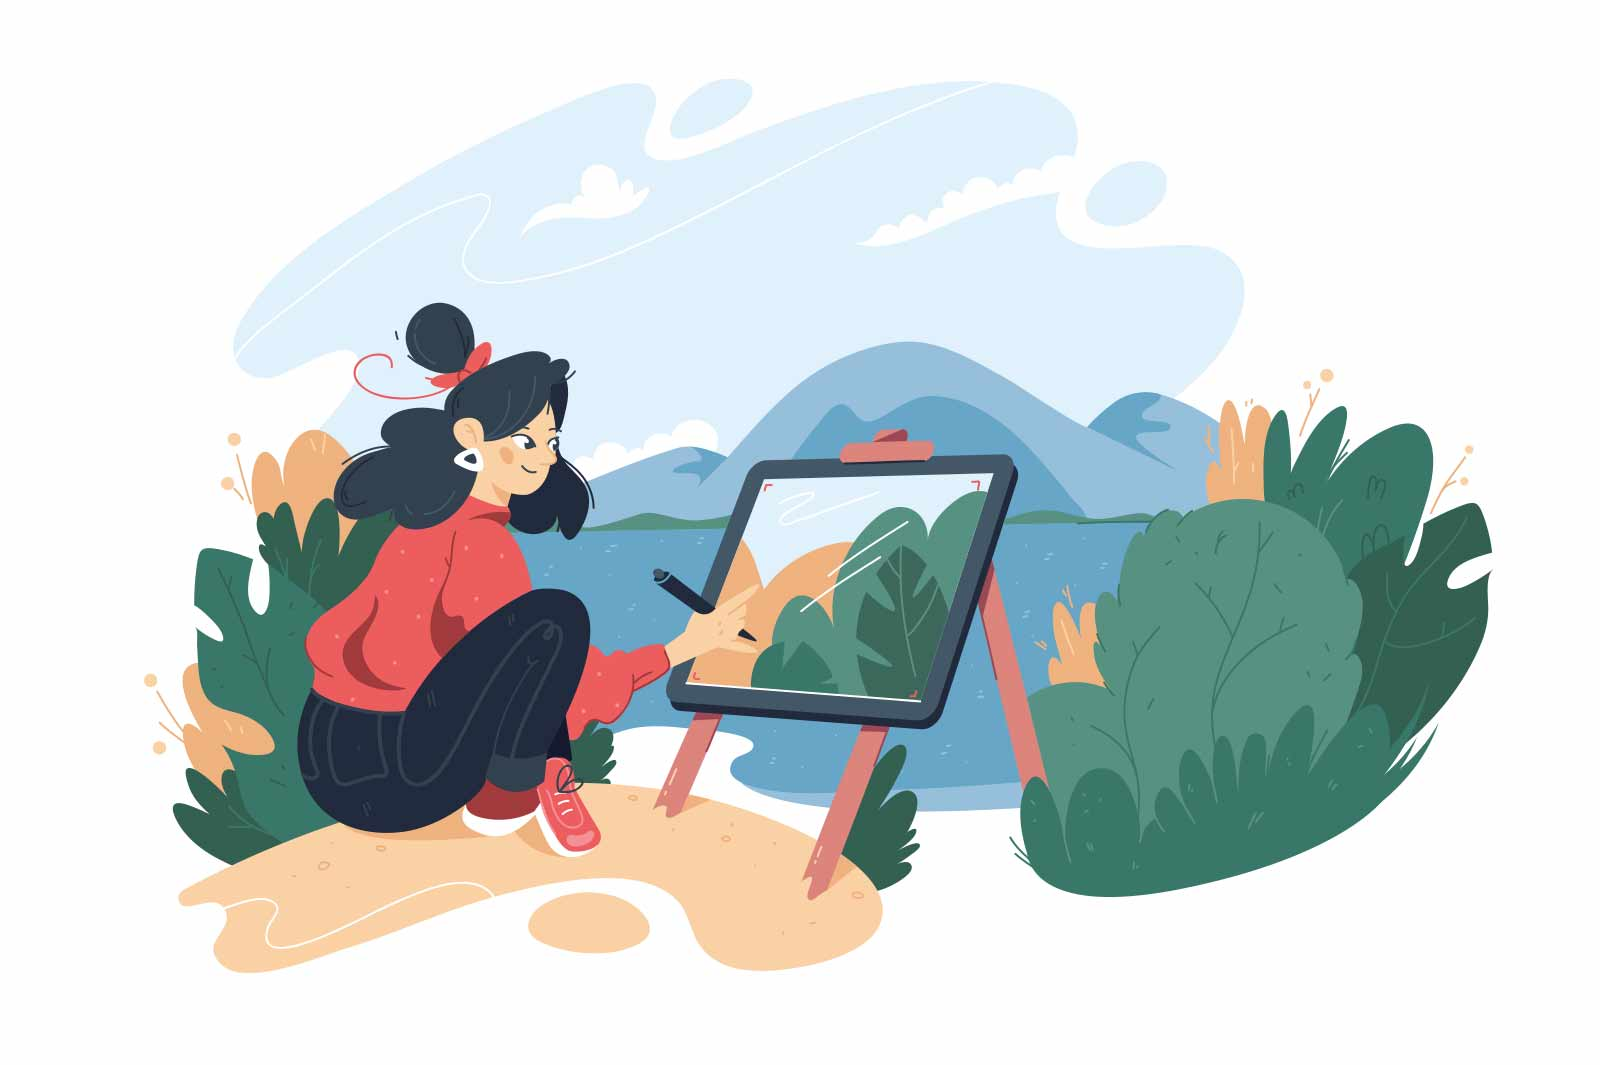 Girl draw picture in nature vector illustration. Woman create masterpiece on easel, country view flat style. Art, hobby, creativity concept